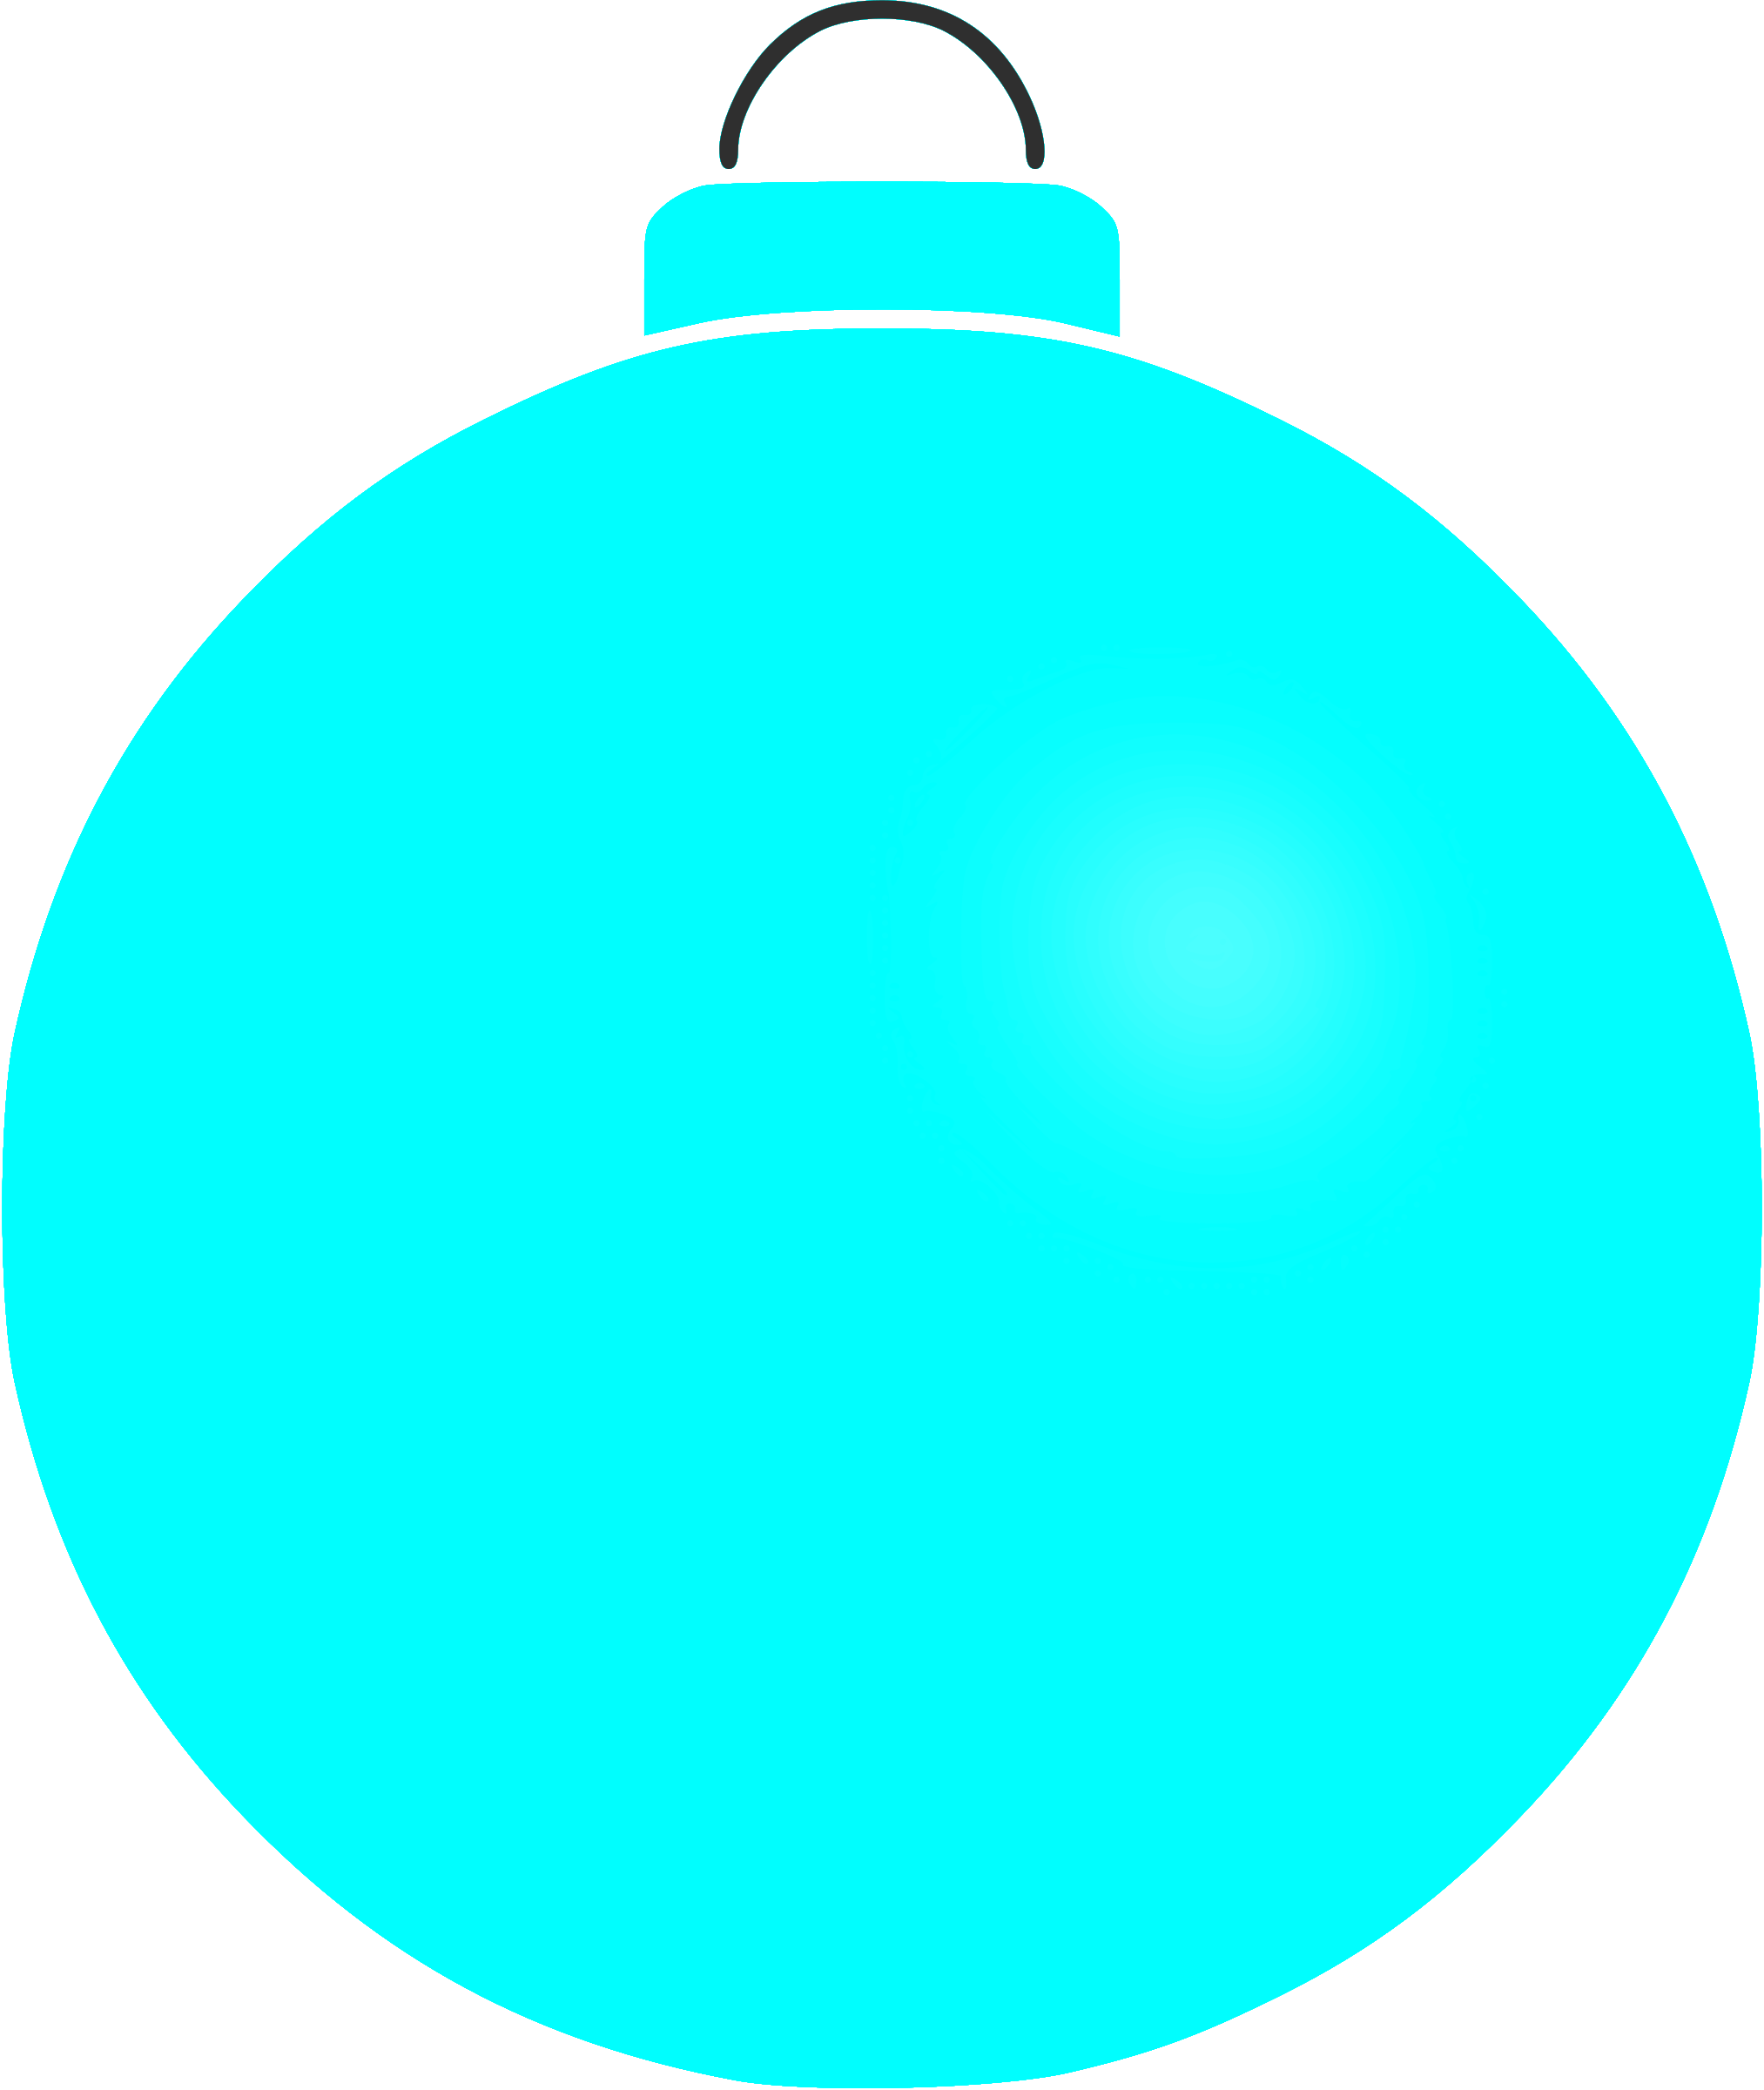 Plain bauble 4 by Firkin